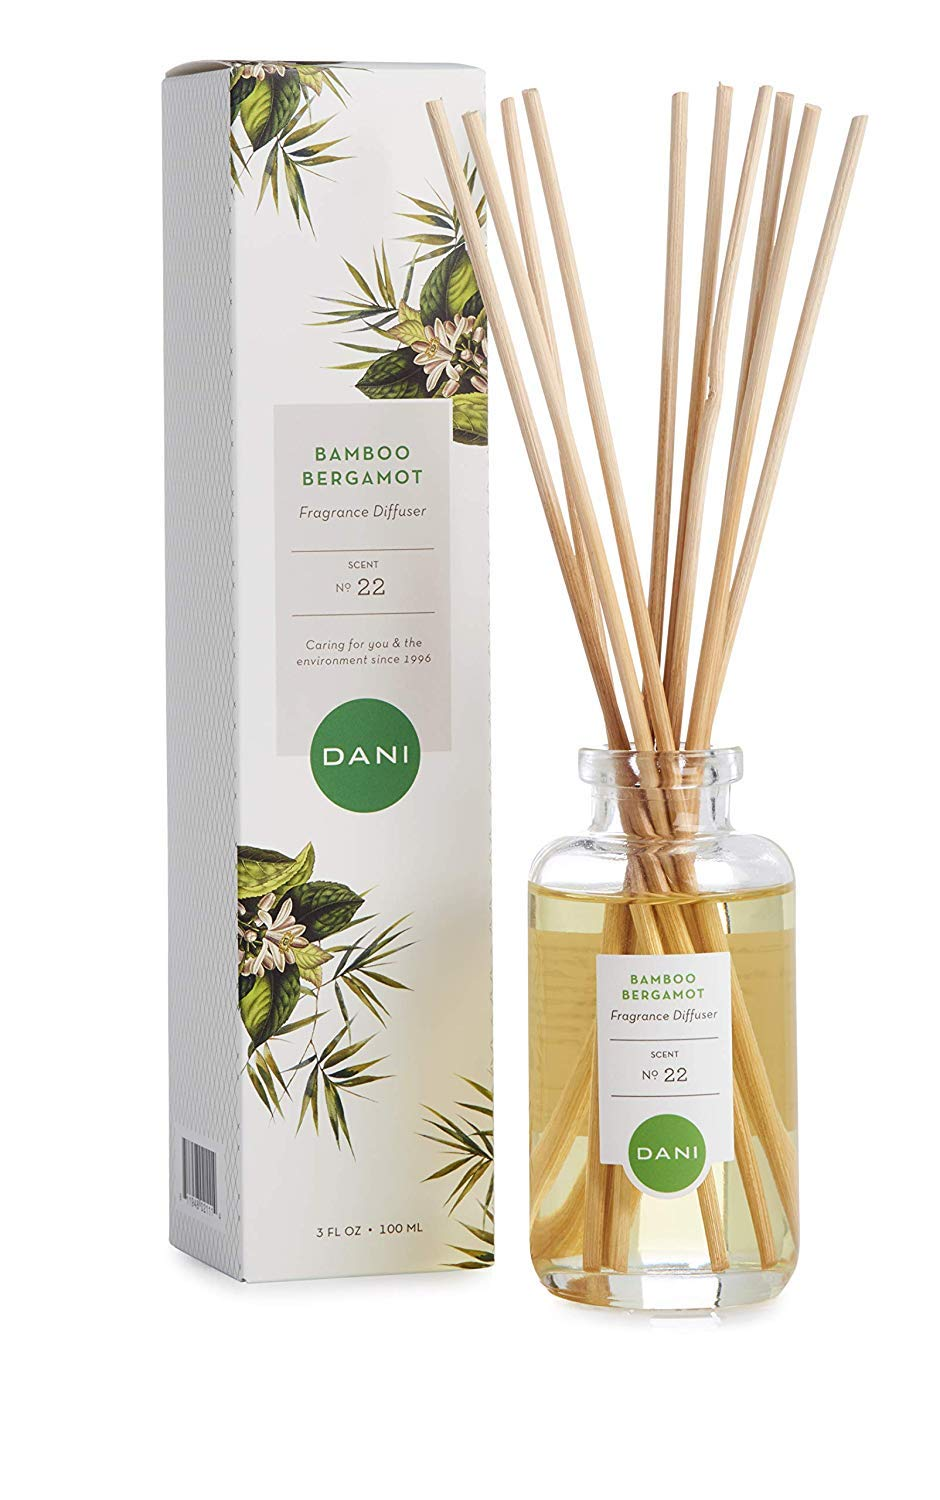 Natural Reed Diffuser Set by DANI Naturals - Clean Bamboo Bergamot Scent - Aromatherapy Essentials Oils - Alcohol Free - 10 Diffuser Sticks - 3.5 Ounce Glass Bottle